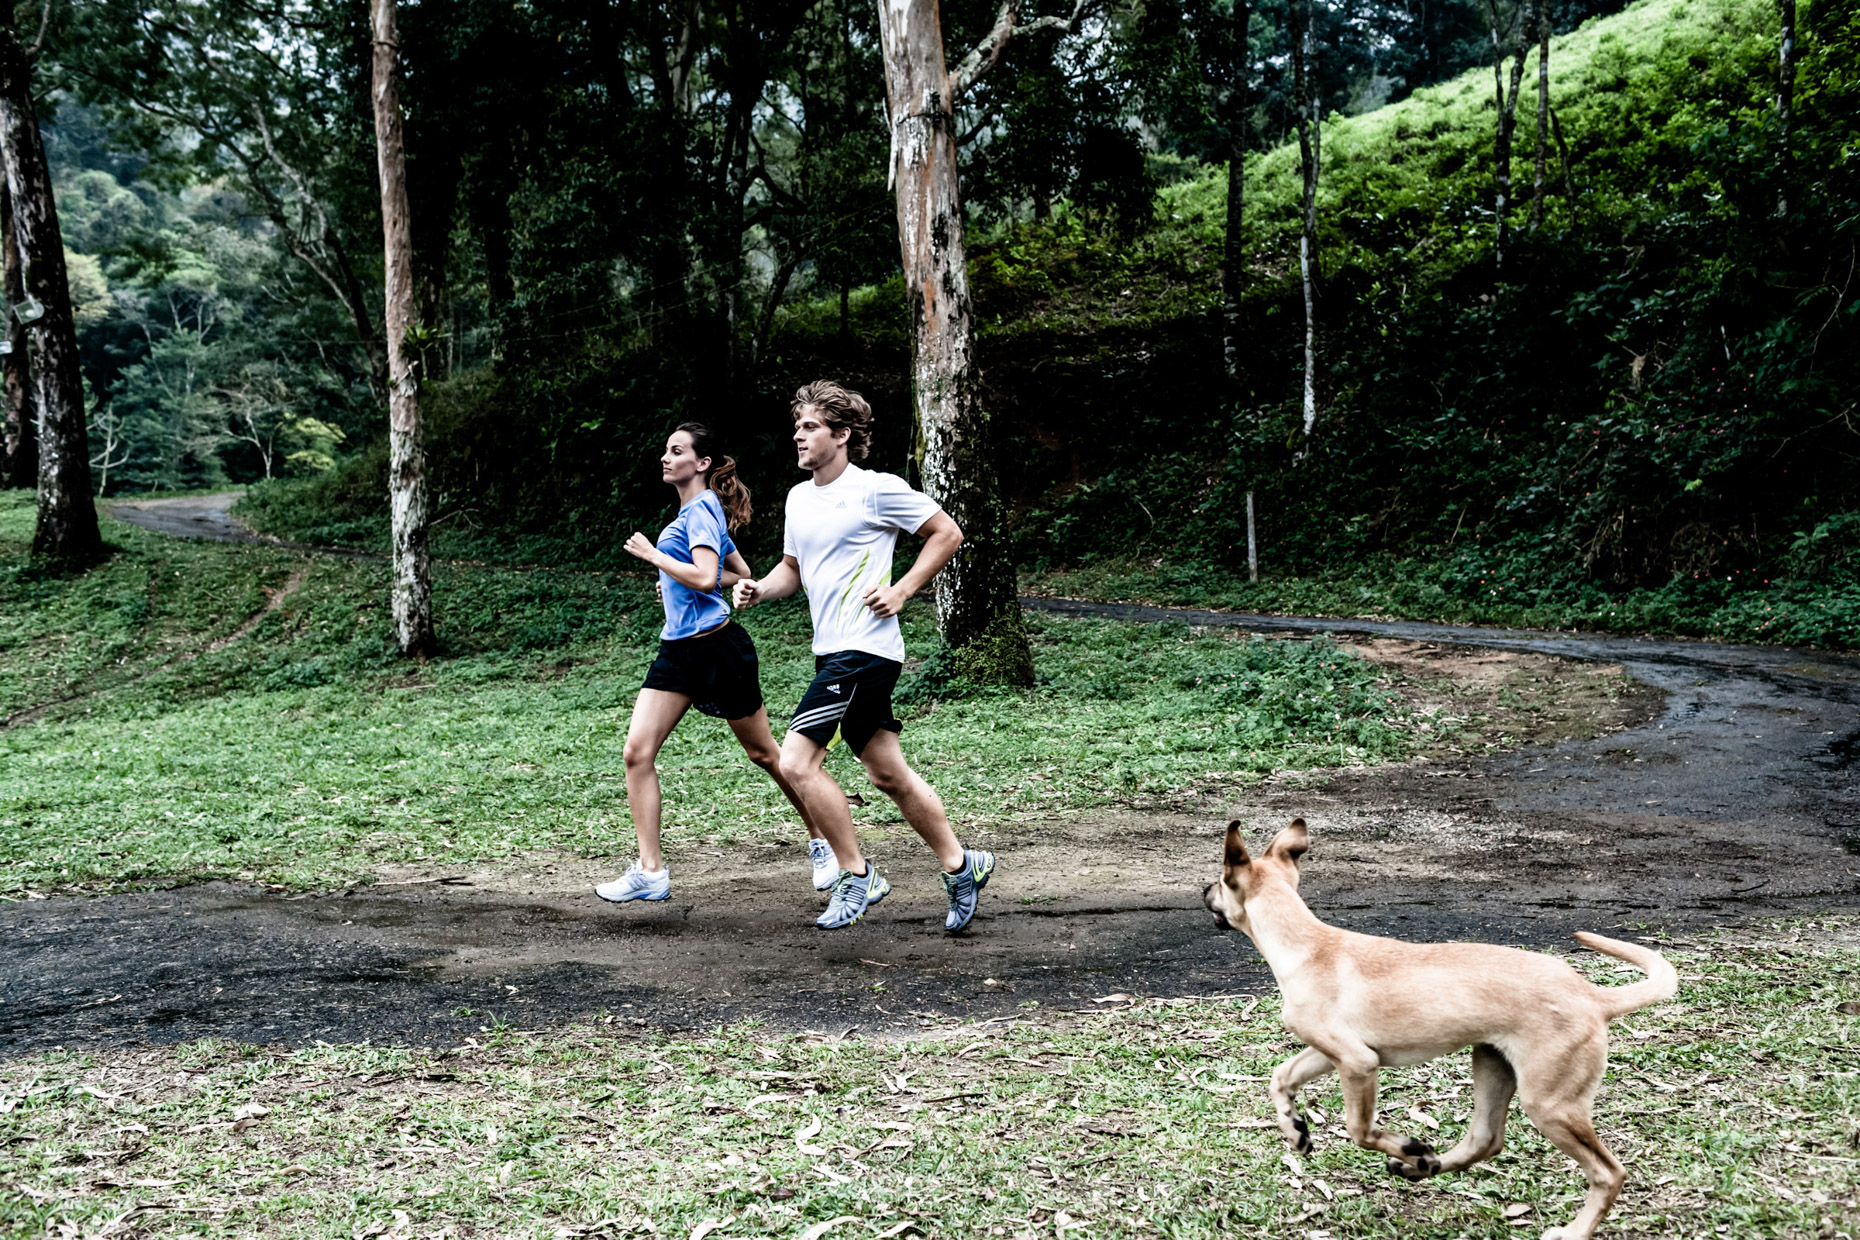 running and training in Rio De Janeiro for adidas by fitness photographer Andy Batt